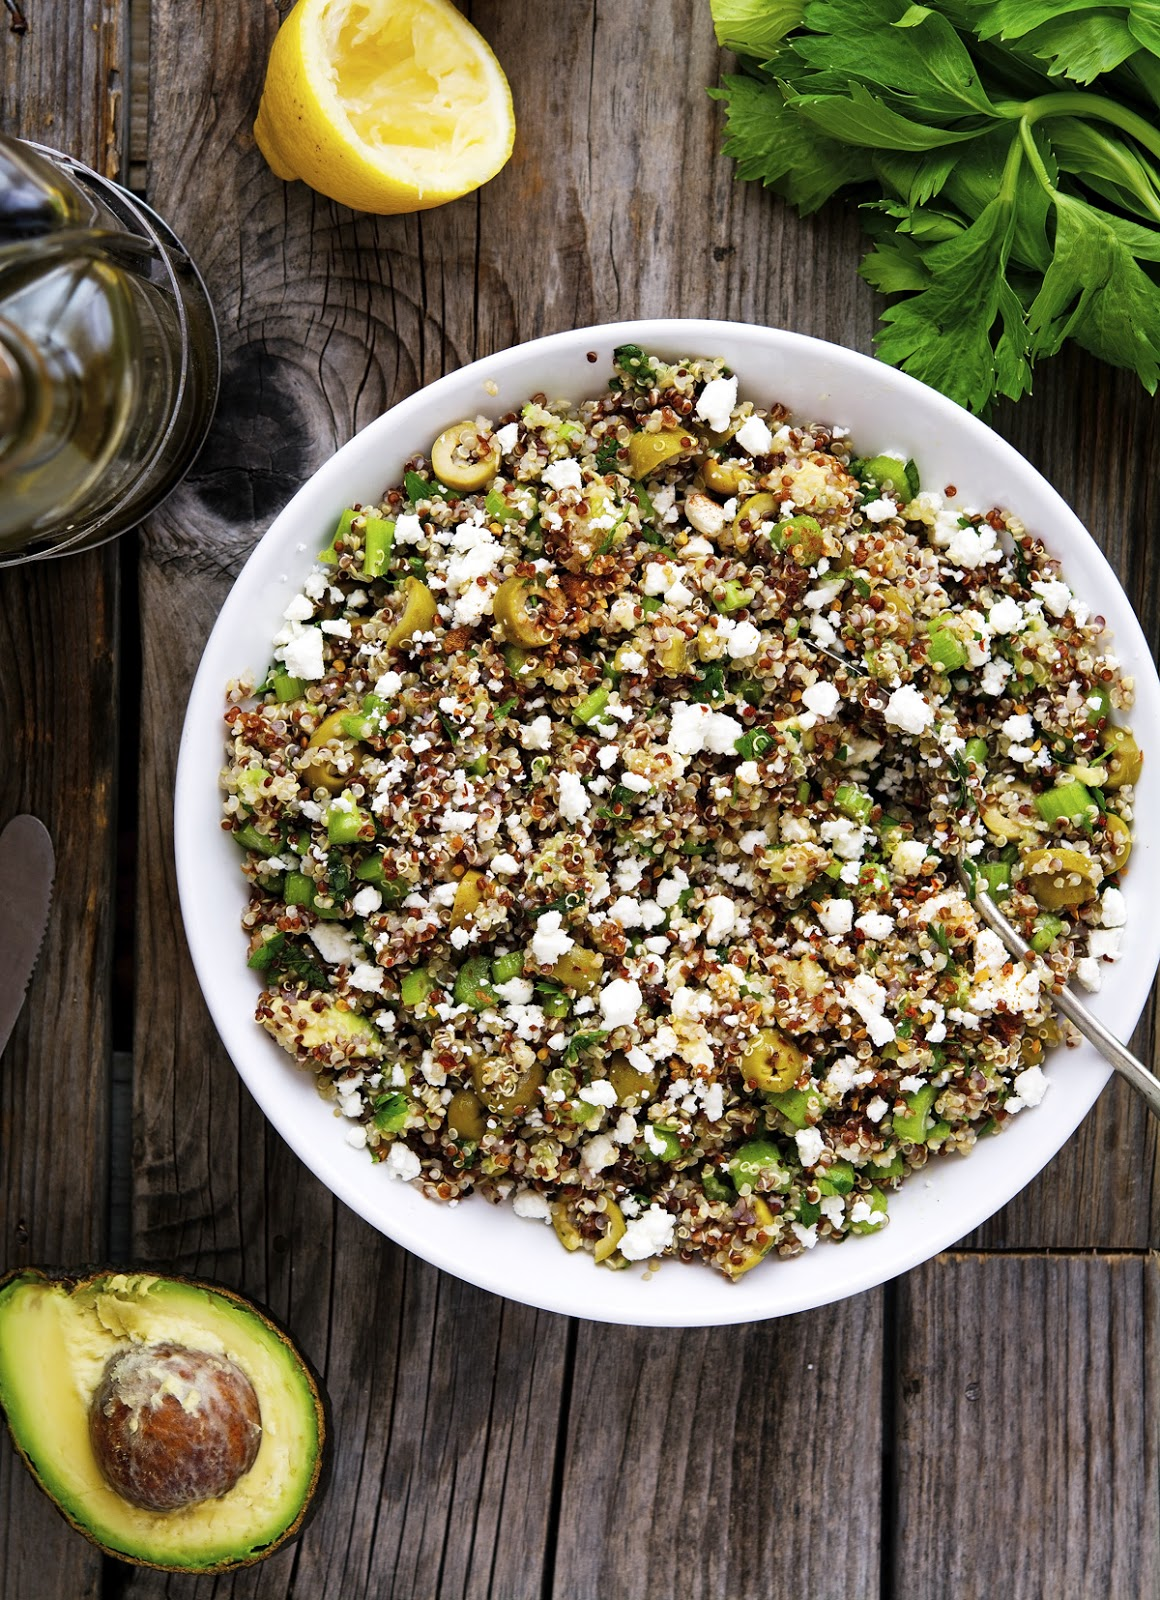 Green Goddess Quinoa Salad with Feta Cheese